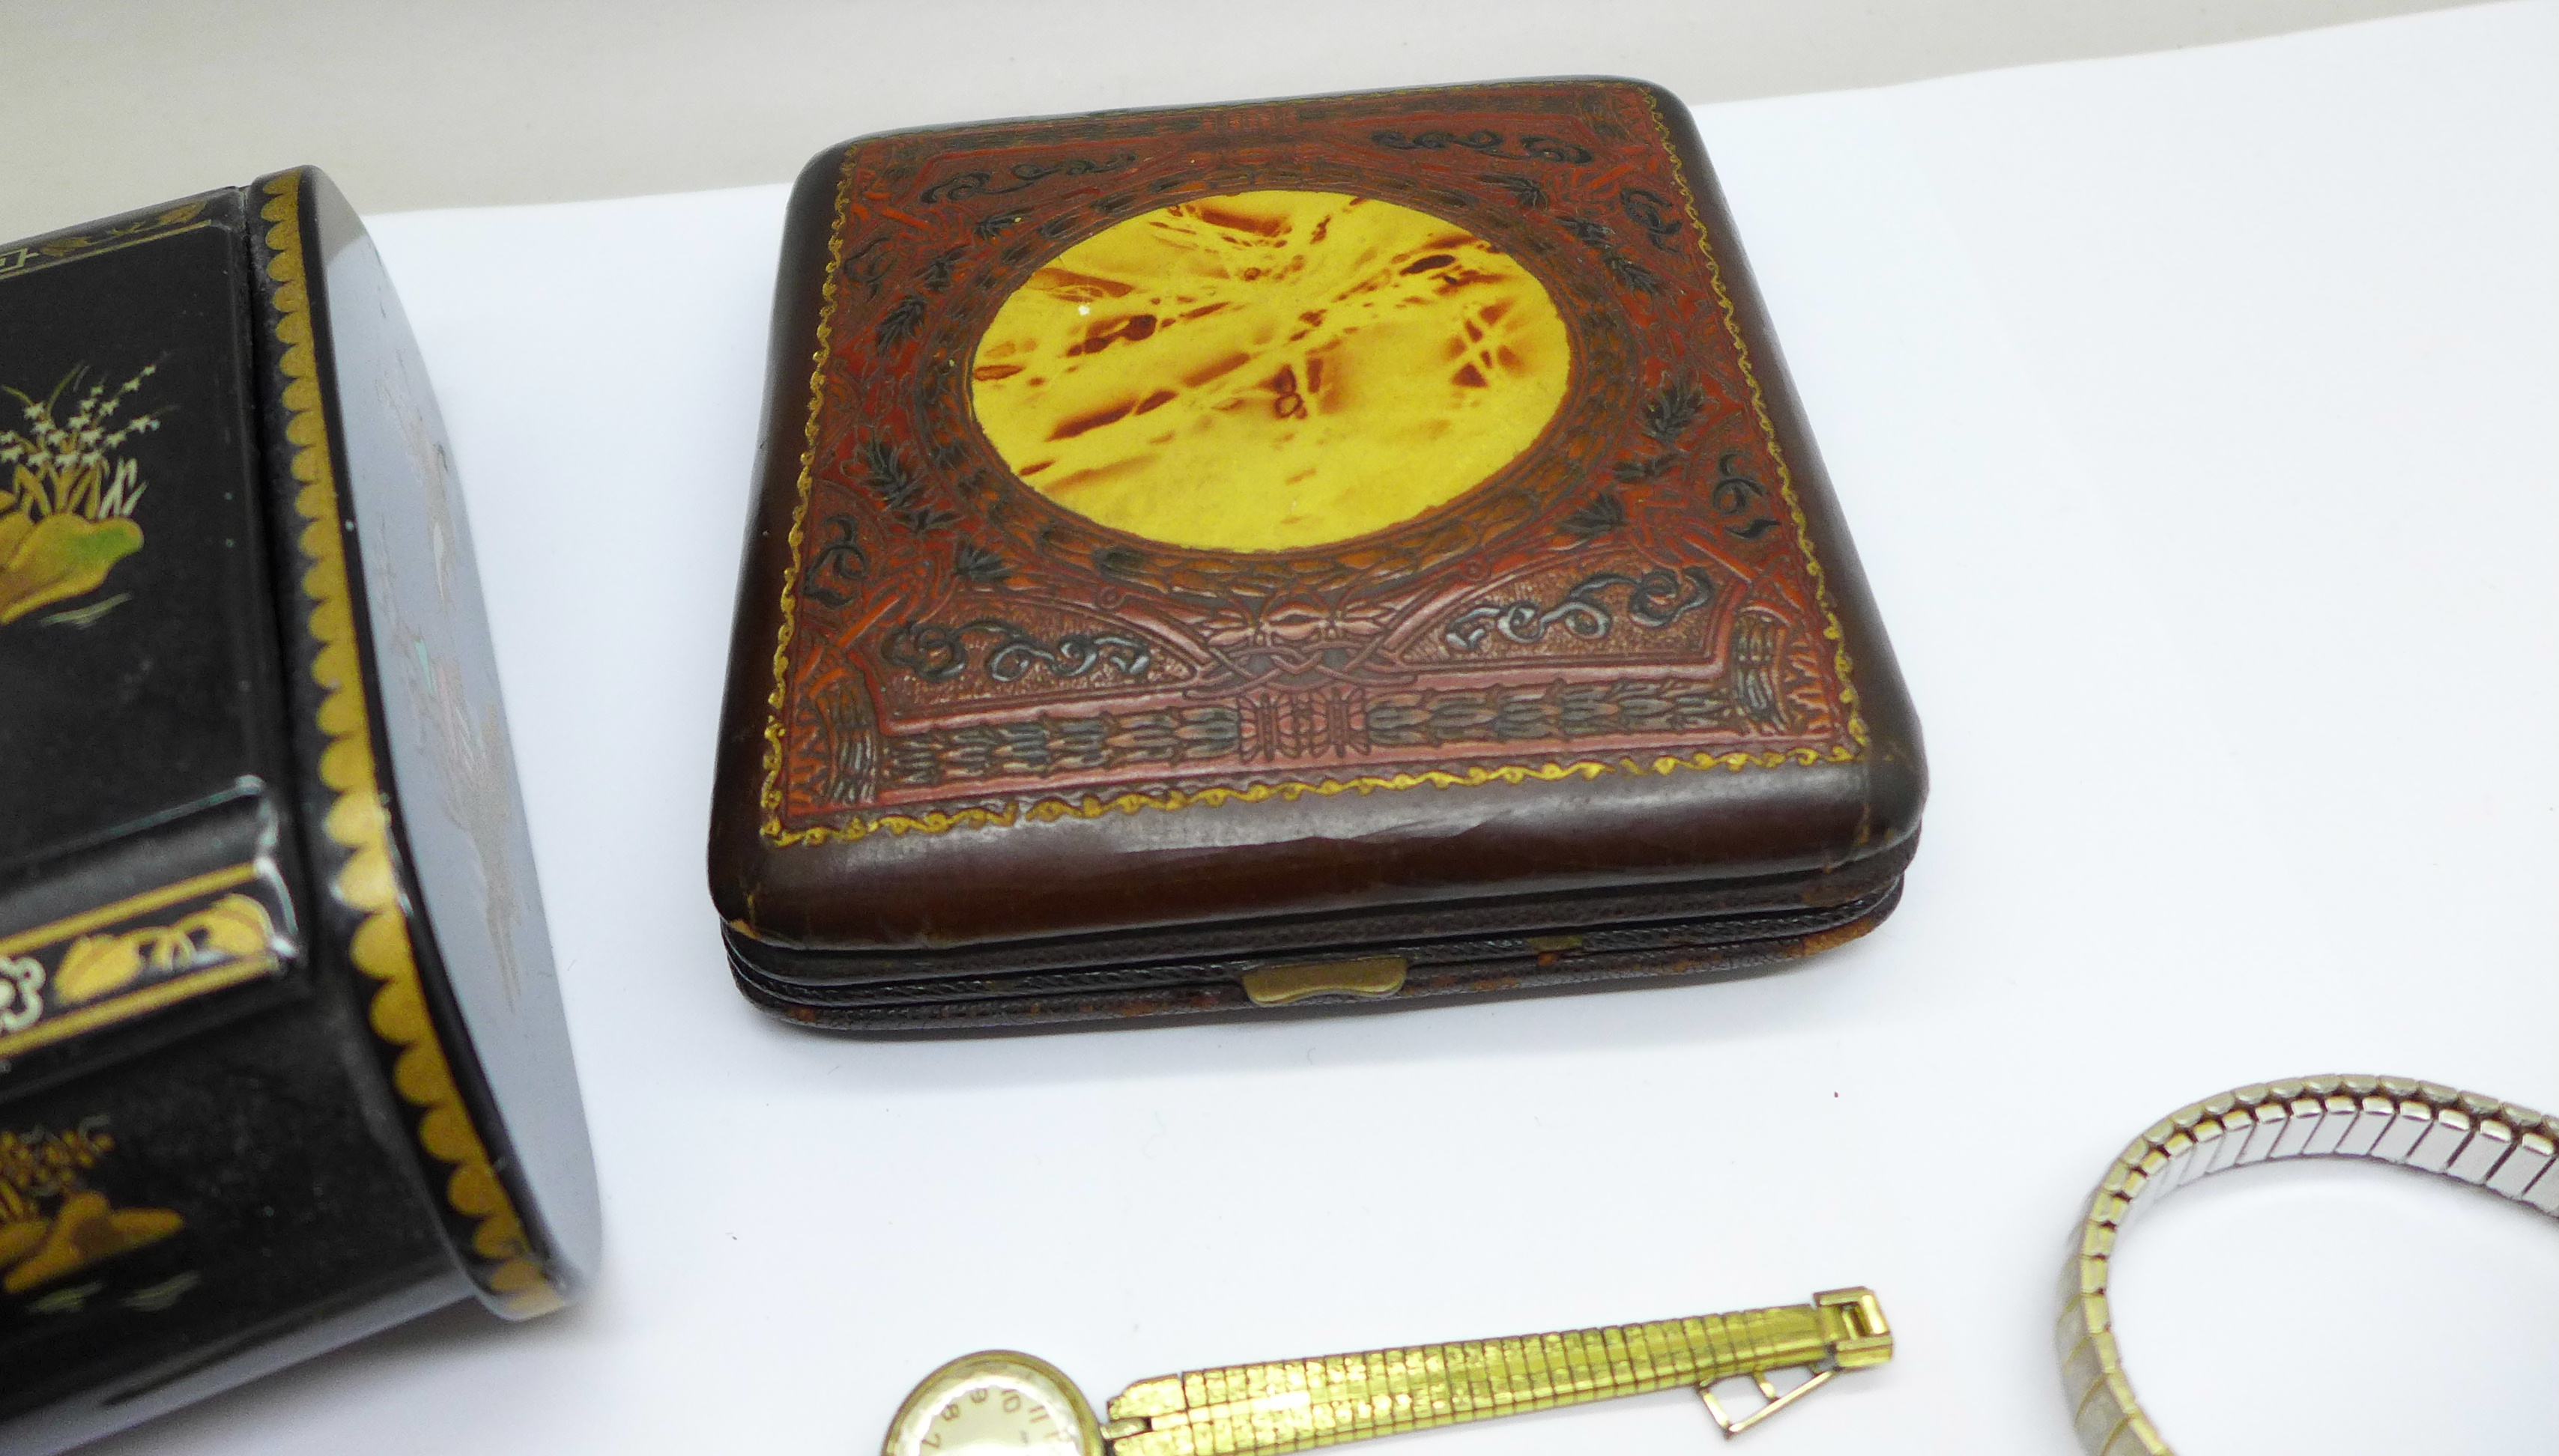 Five lady's wristwatches, a Kienzle travel clock and a trinket box - Image 6 of 9